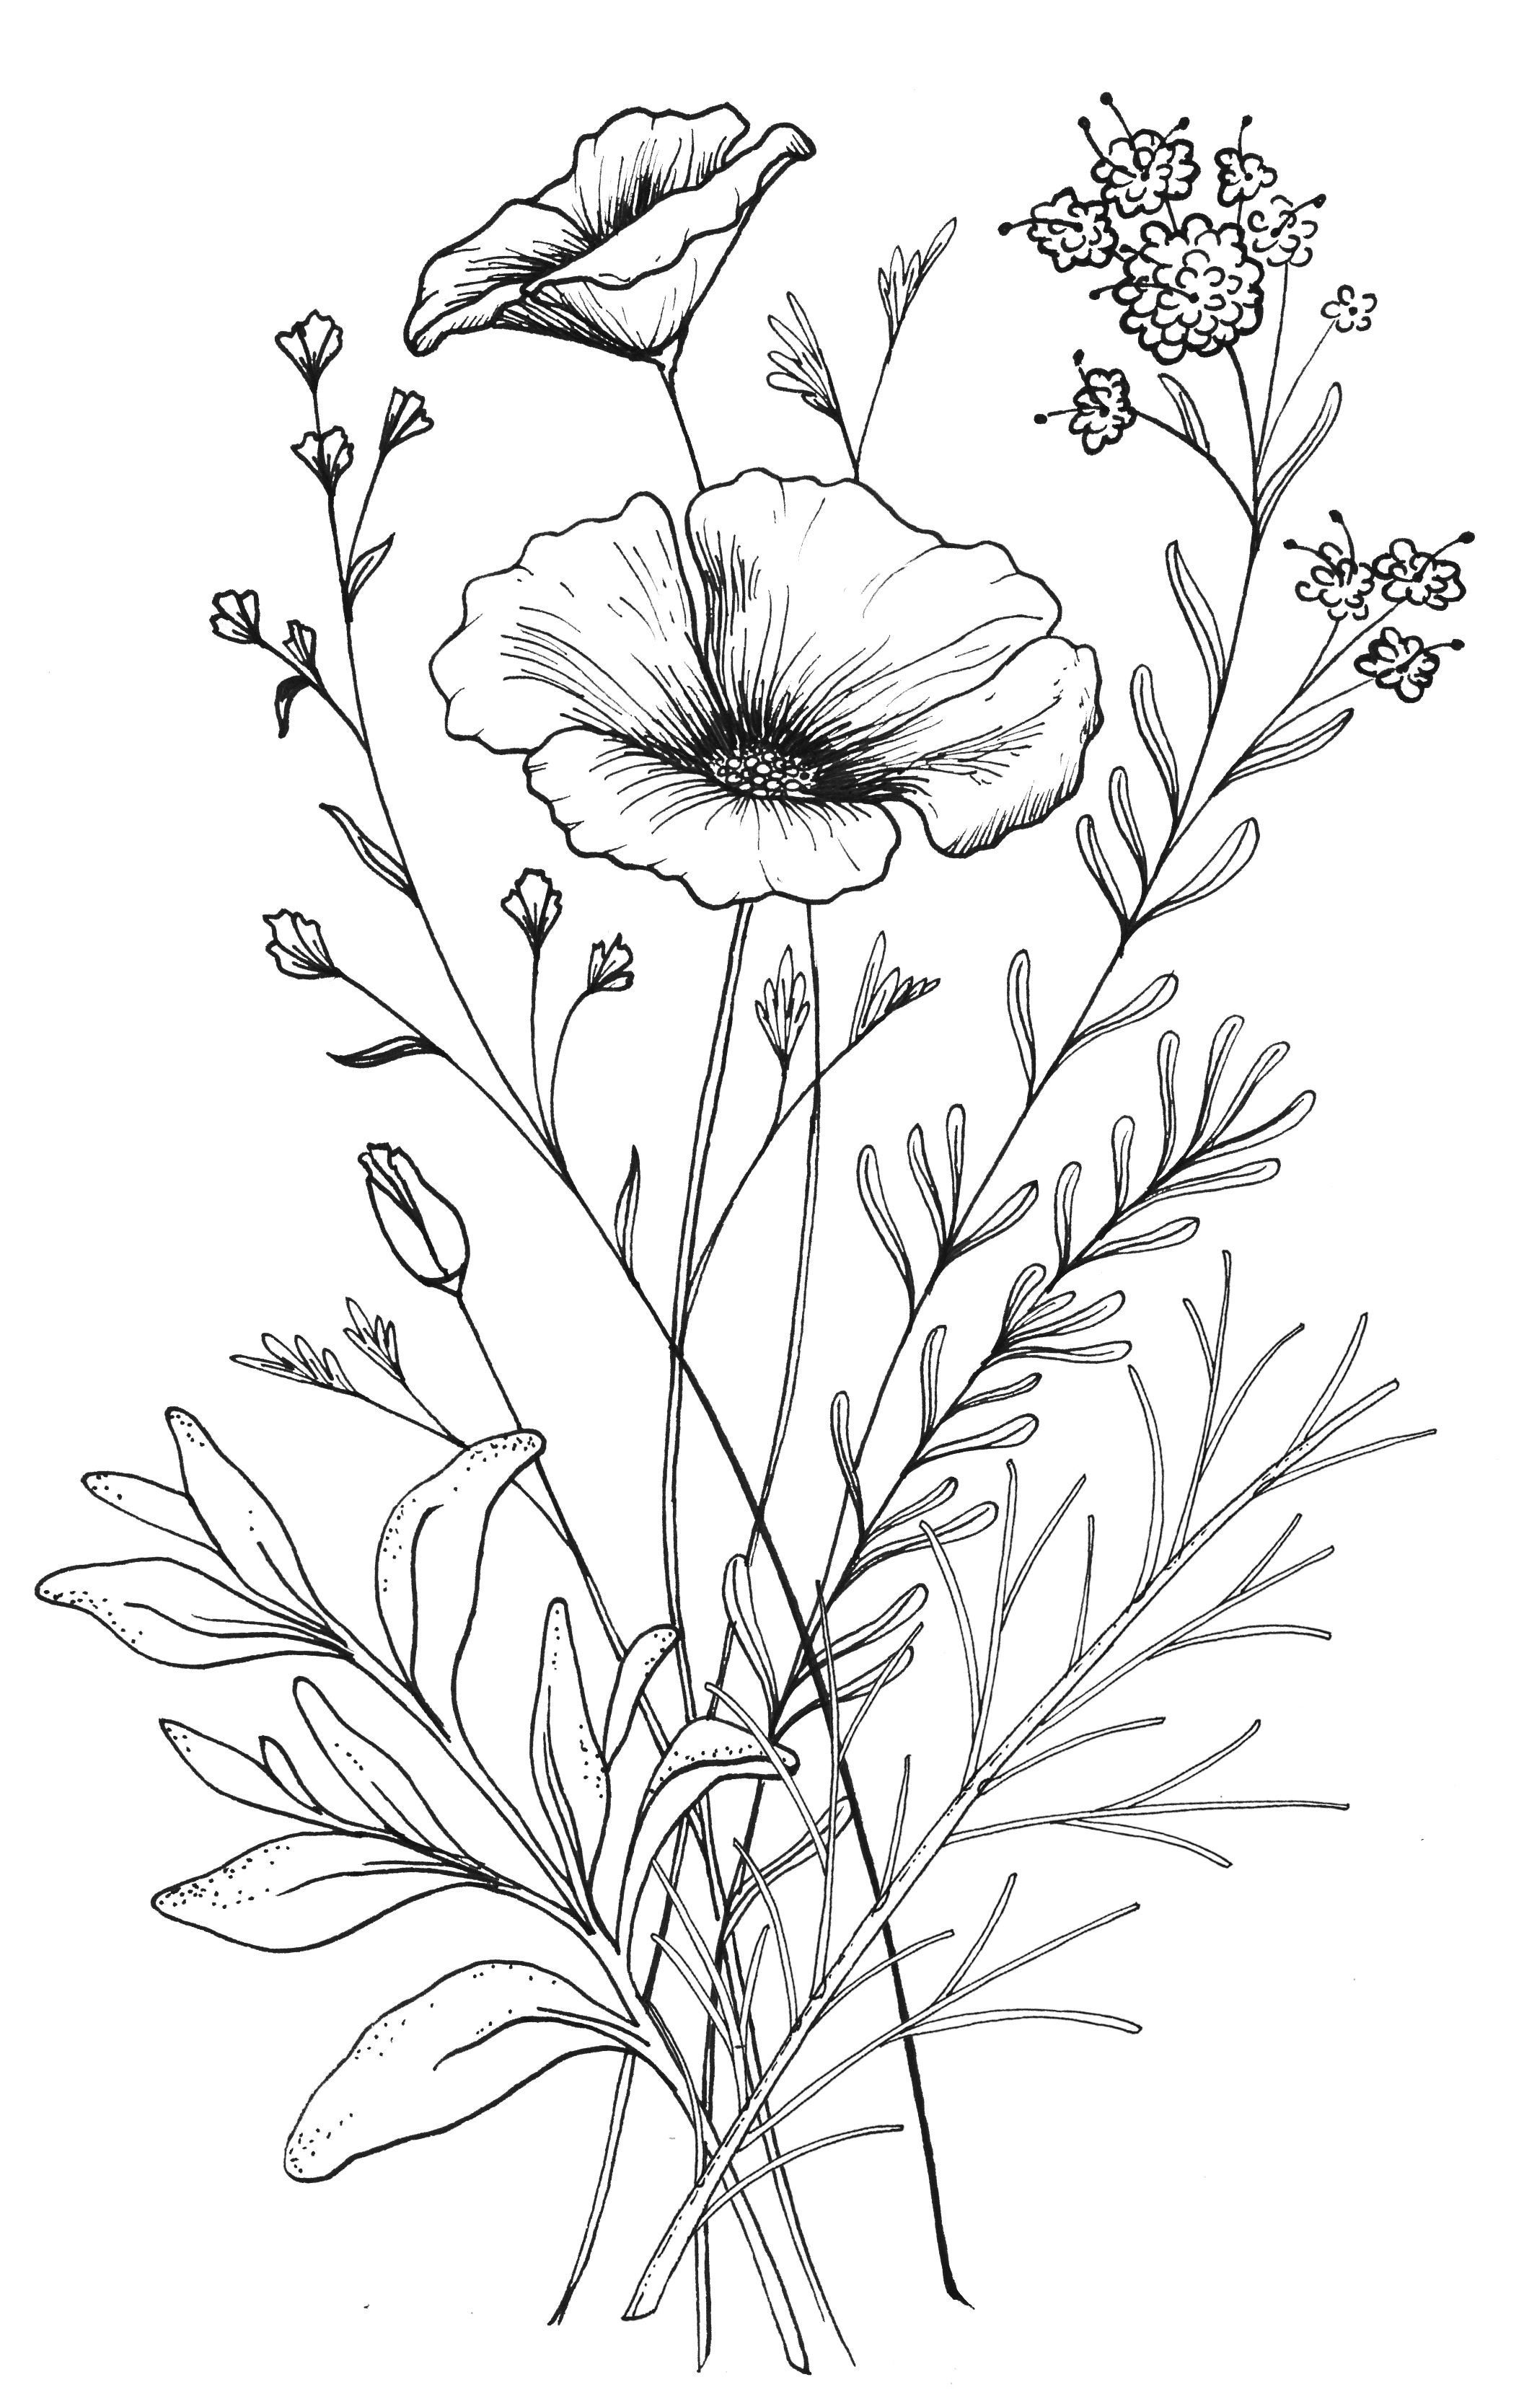 Custom Ca Wildflower Tattoo Design From Red Umbrella Designs